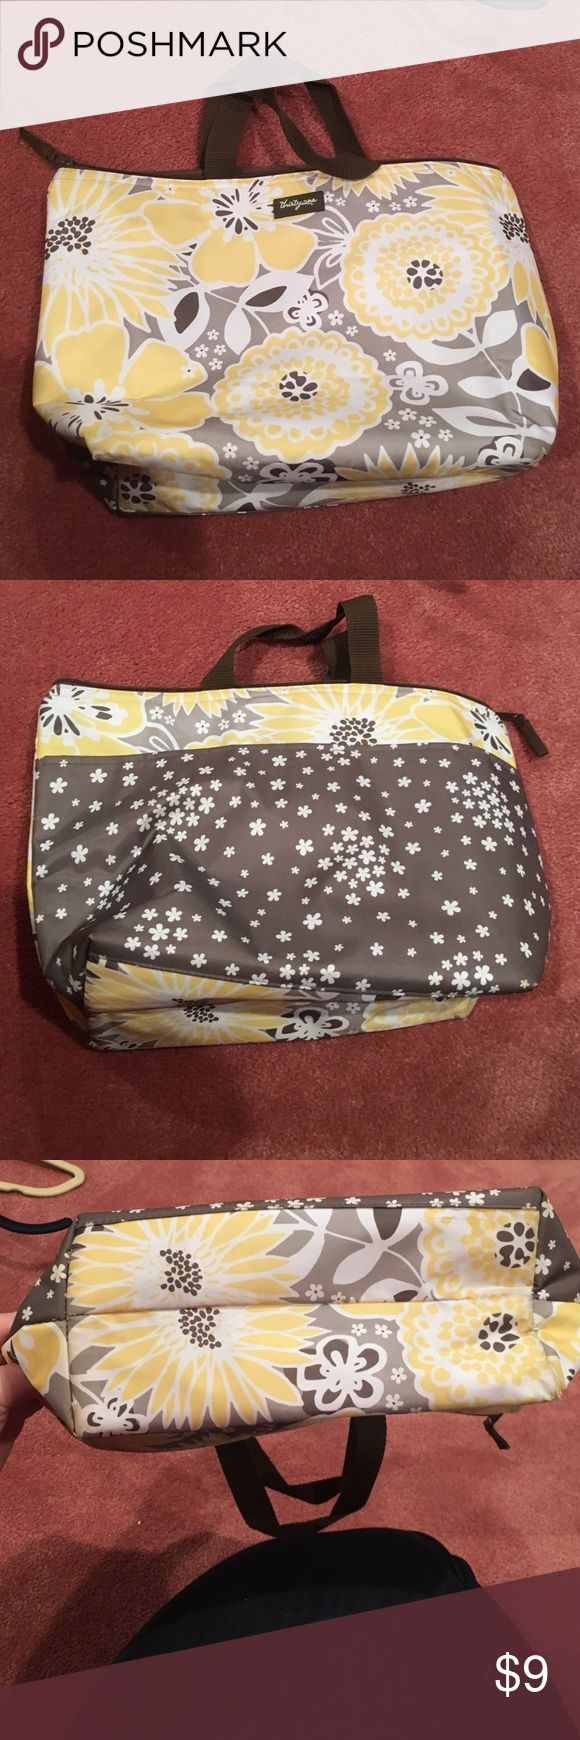 Thirty-one yellow and gray floral print lunch bag Thirty-one gray and floral print lunch bag.  Bag is in great overall condition and shows very slight wear on the bottom.  It was only used a few times.  Comes from a smoke free and pet free home.  Bundle and save! Thirty-one Bags